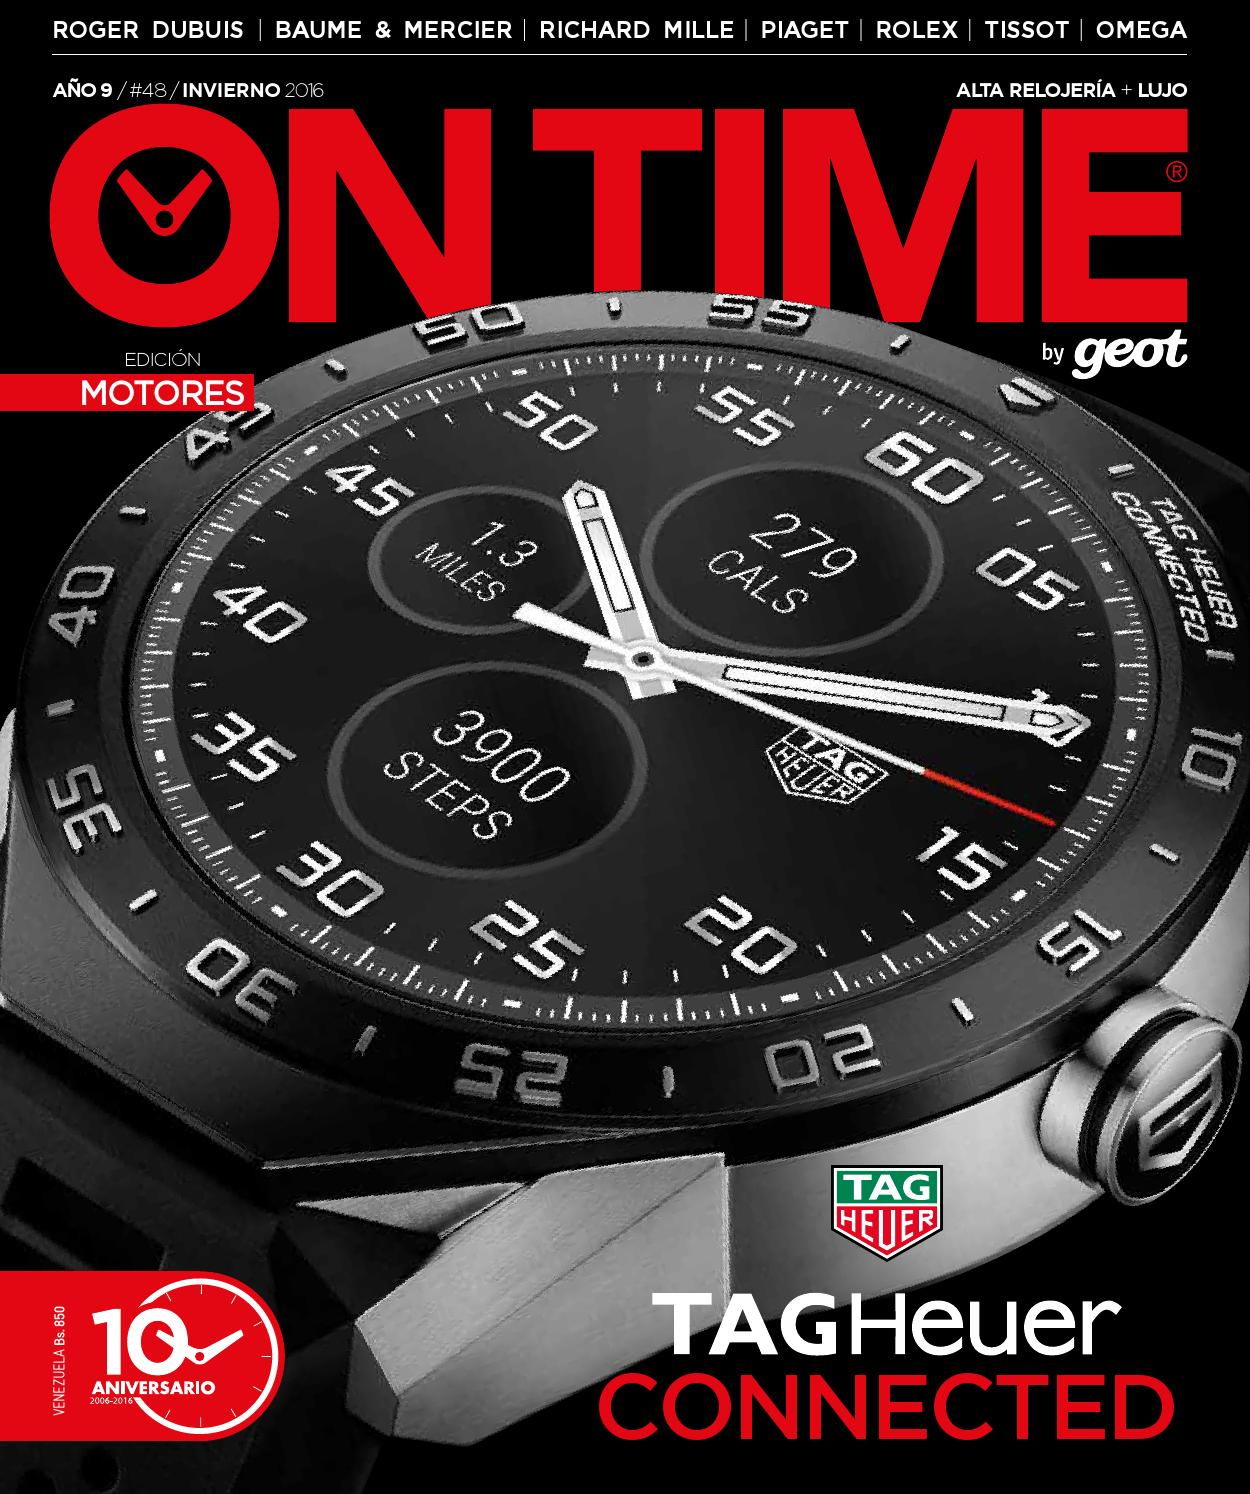 81b6e733fee ON TIME Invierno 2016 by Geot  Grupo Editorial On Time  - issuu